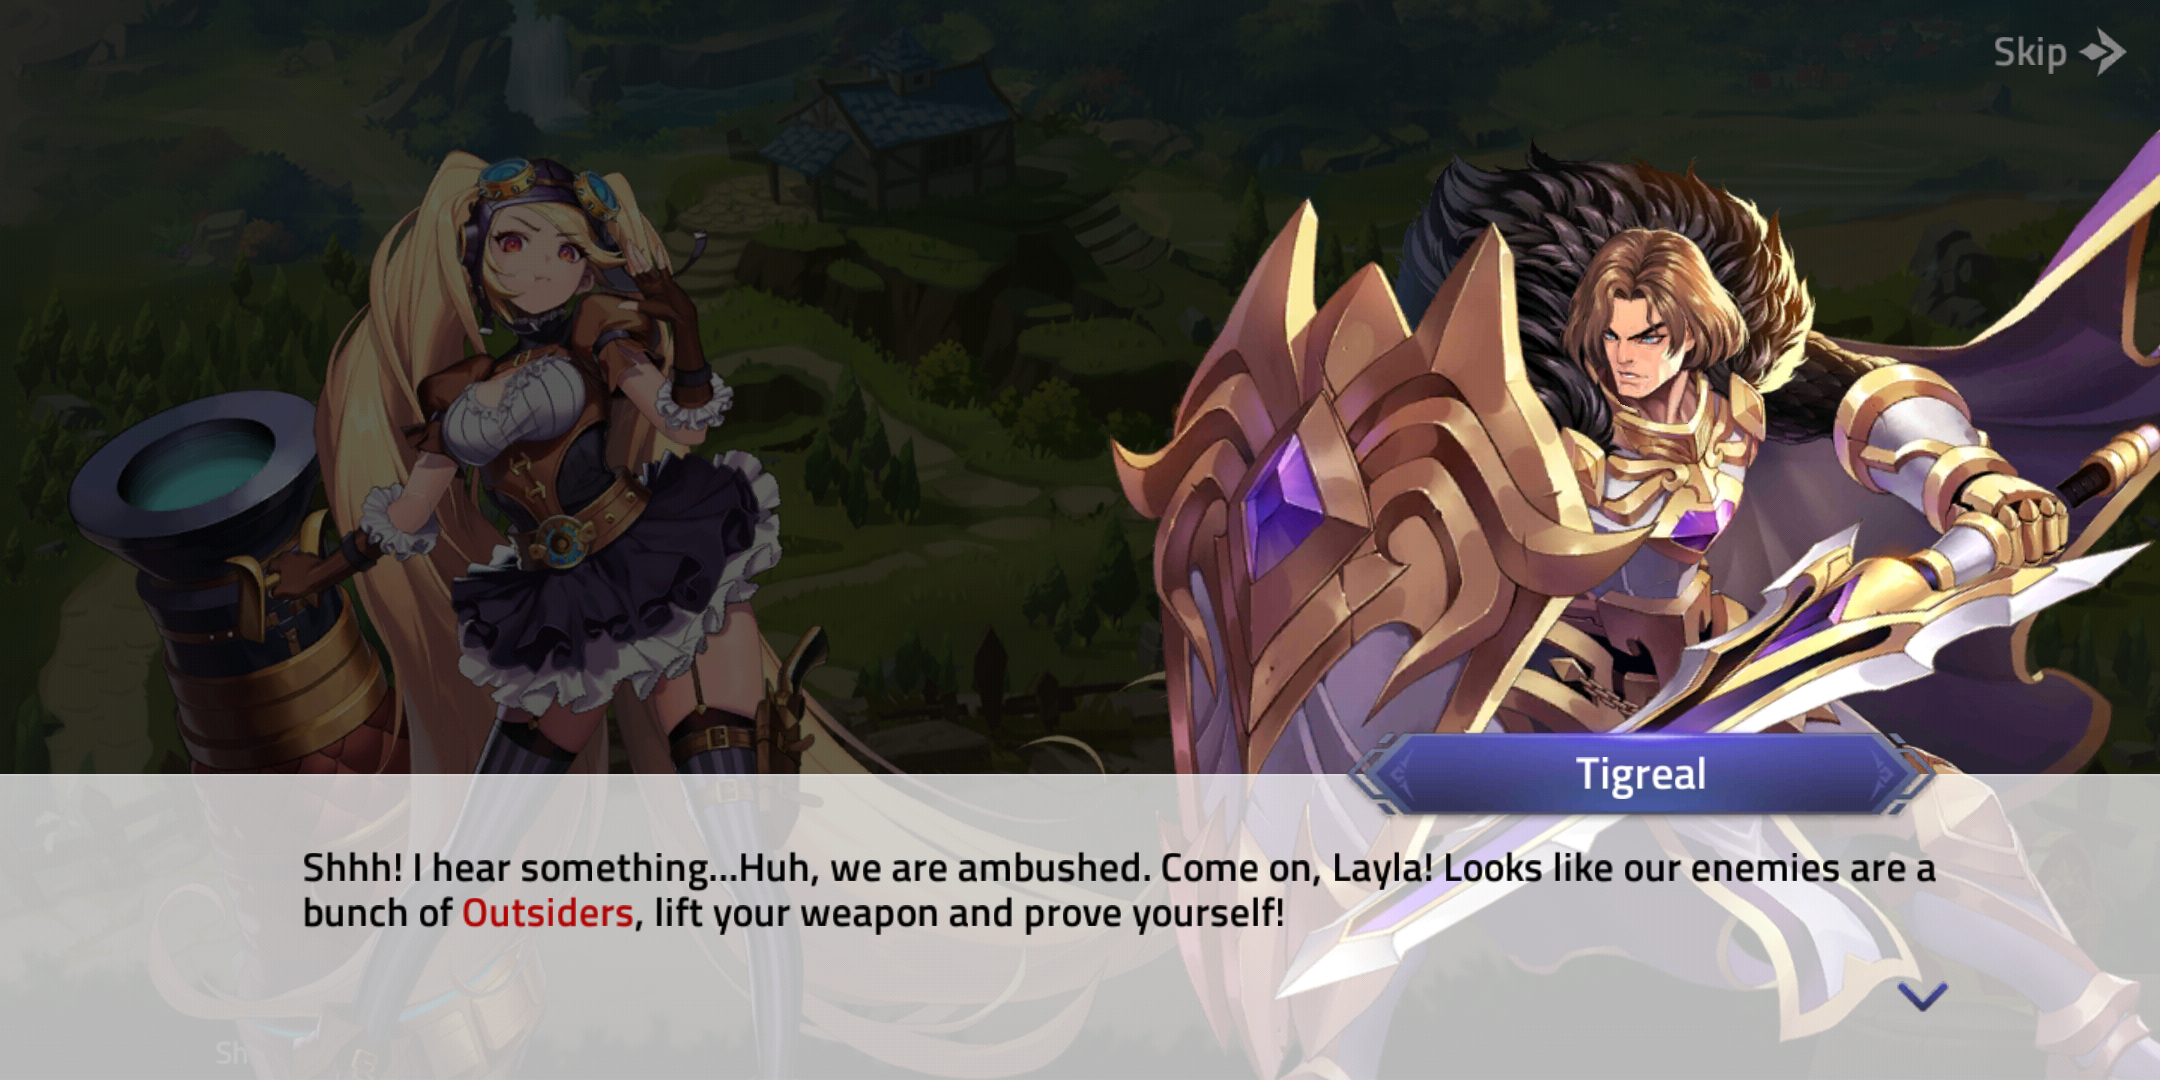 Screenshot of new mobile legends game; Layla and Tigreal's conversation in Mobile Legends: Adventure